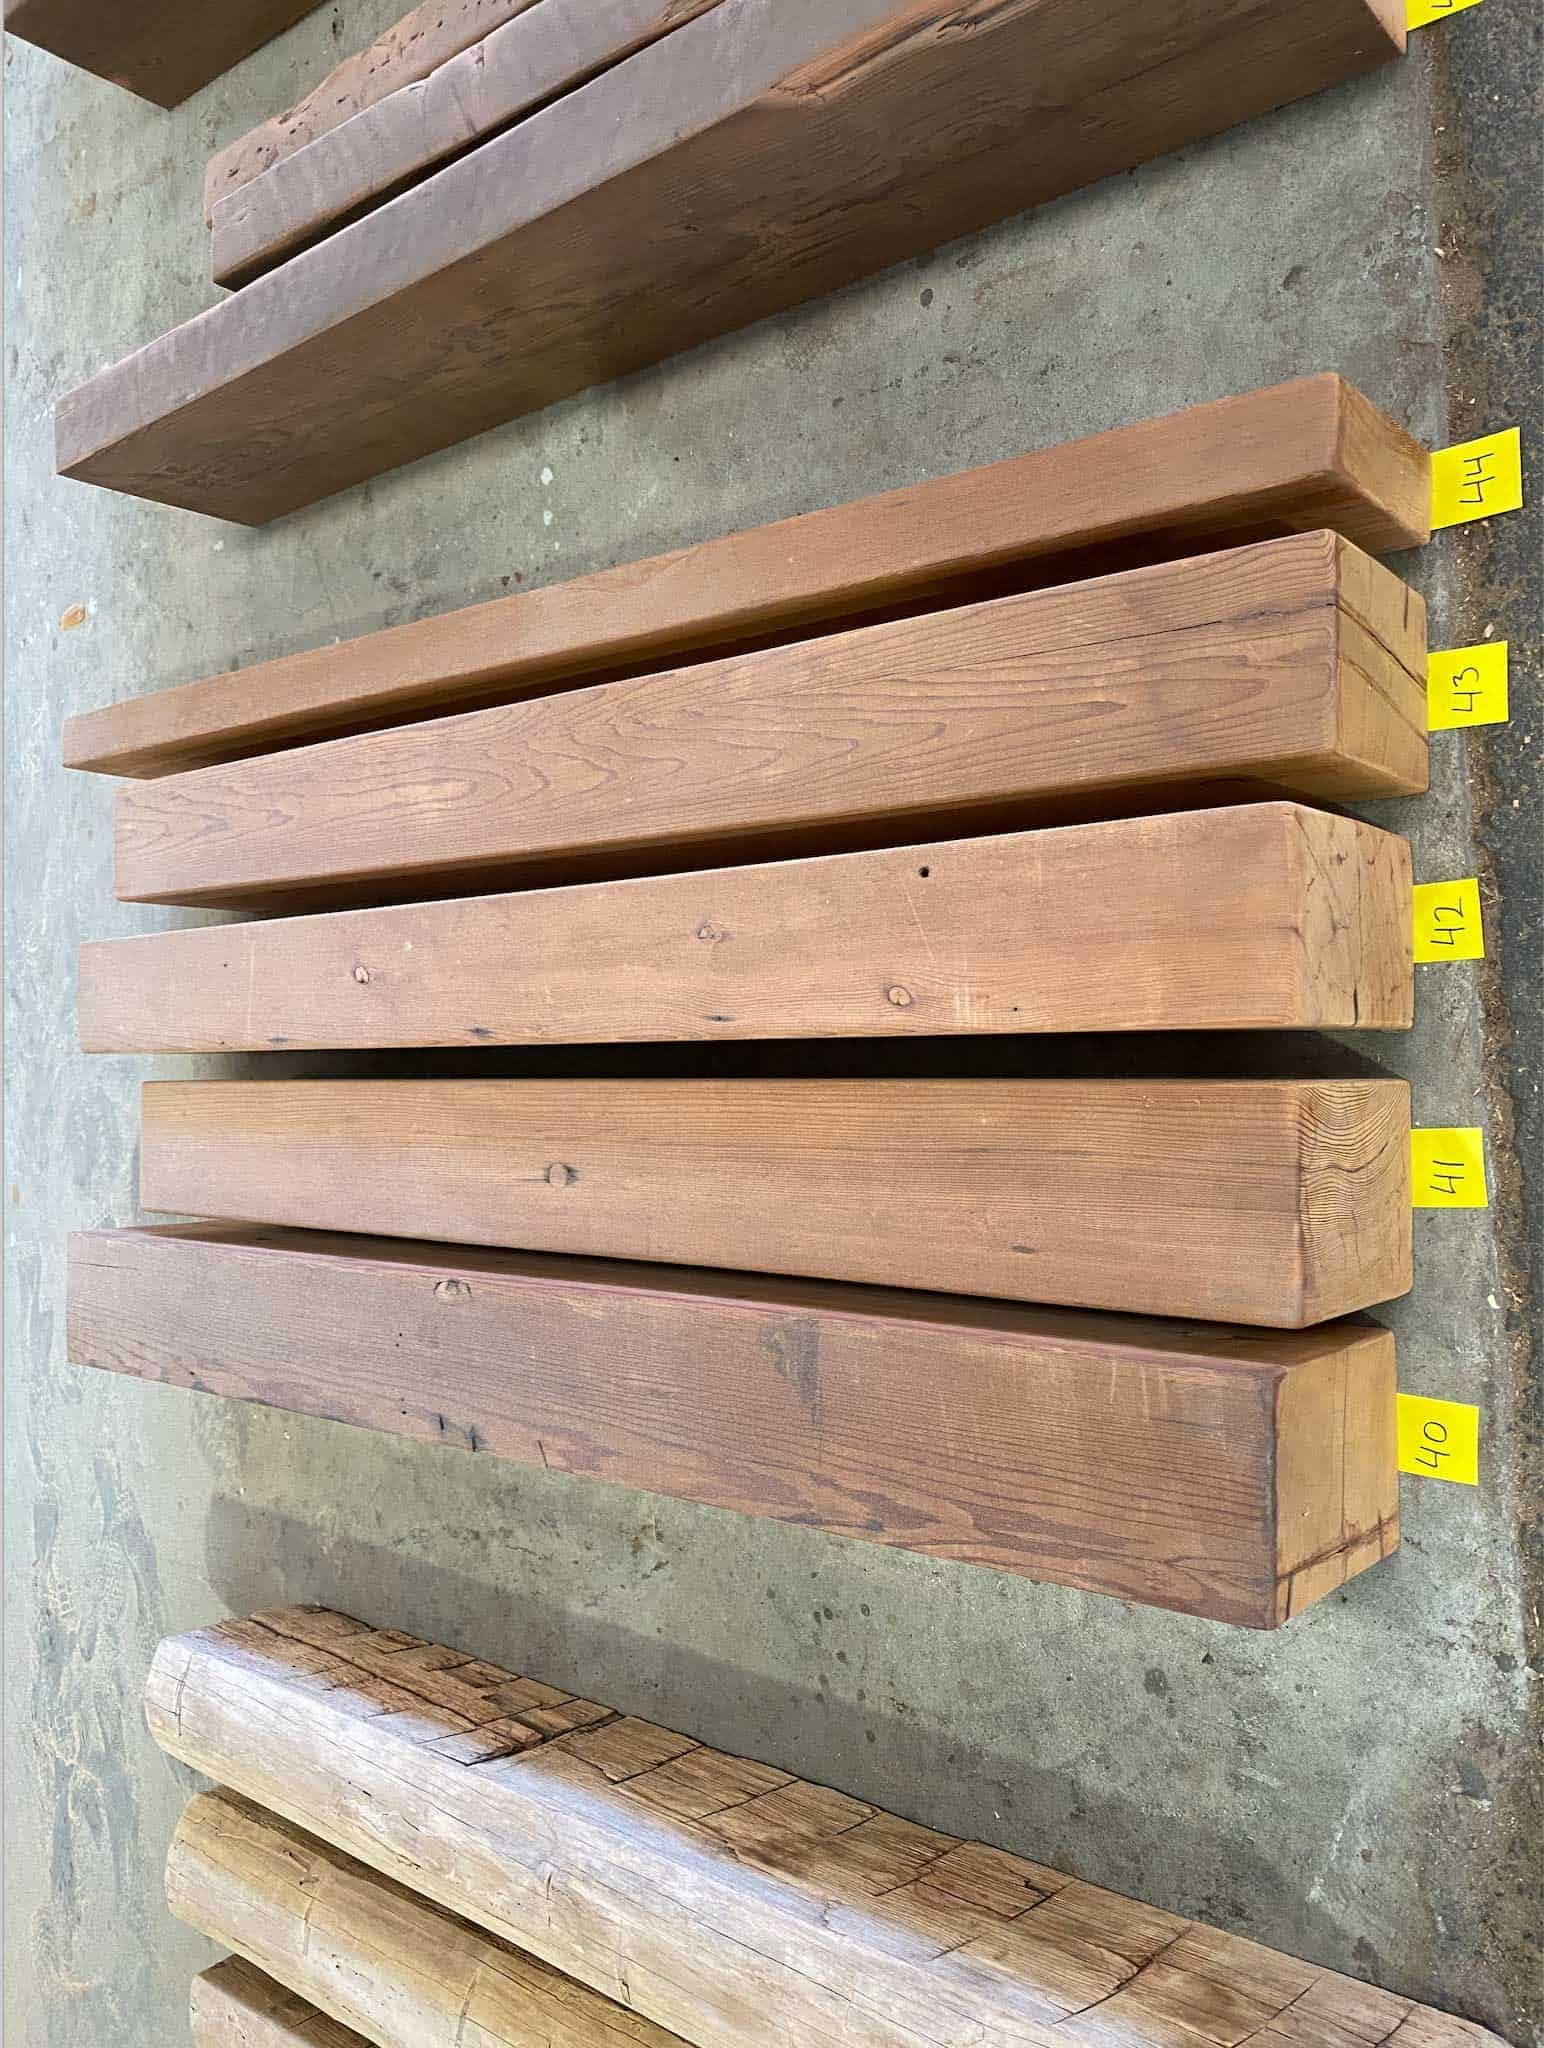 Surfaced Redwood Mantels 1 e1588192507825 - Vintage Timberware